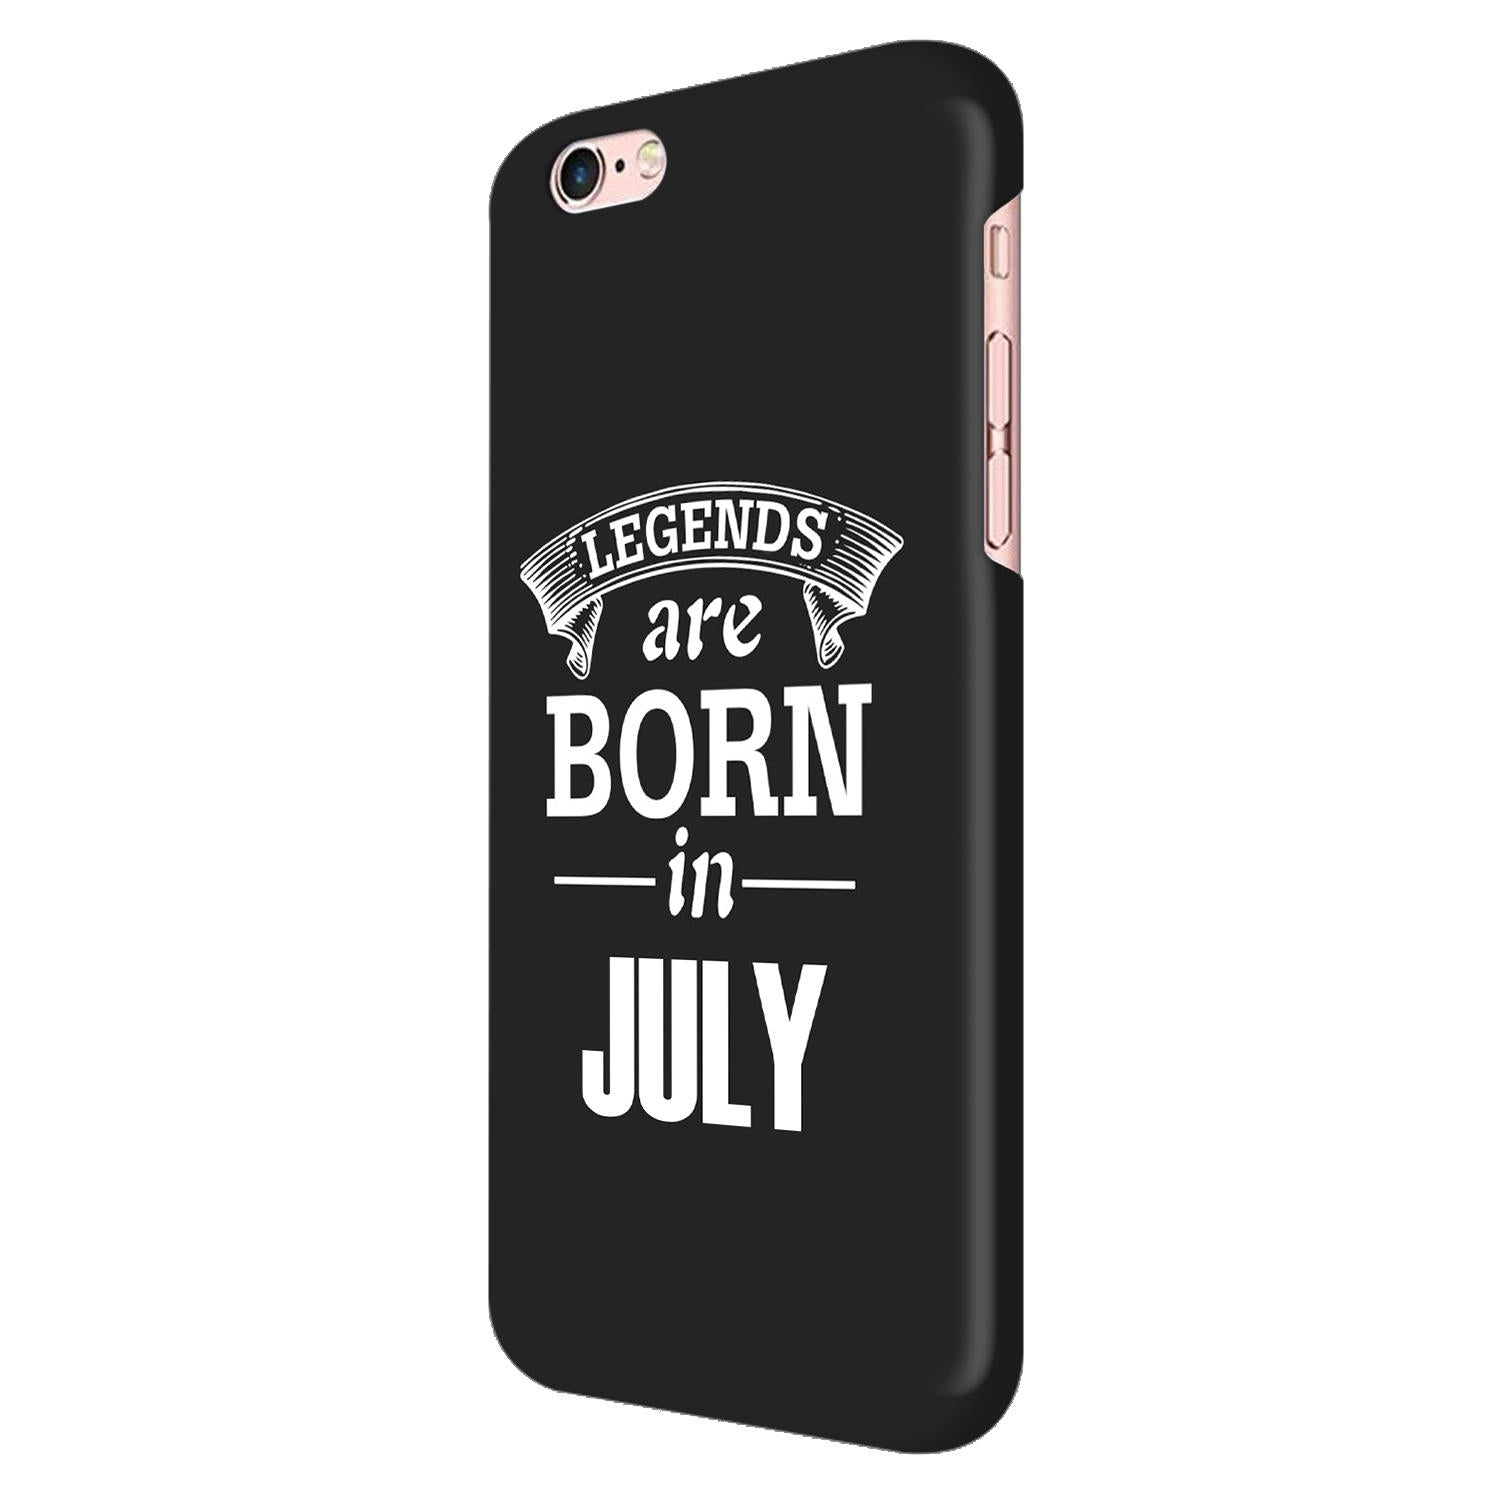 Legends July iPhone 6 Mobile Cover Case - MADANYU